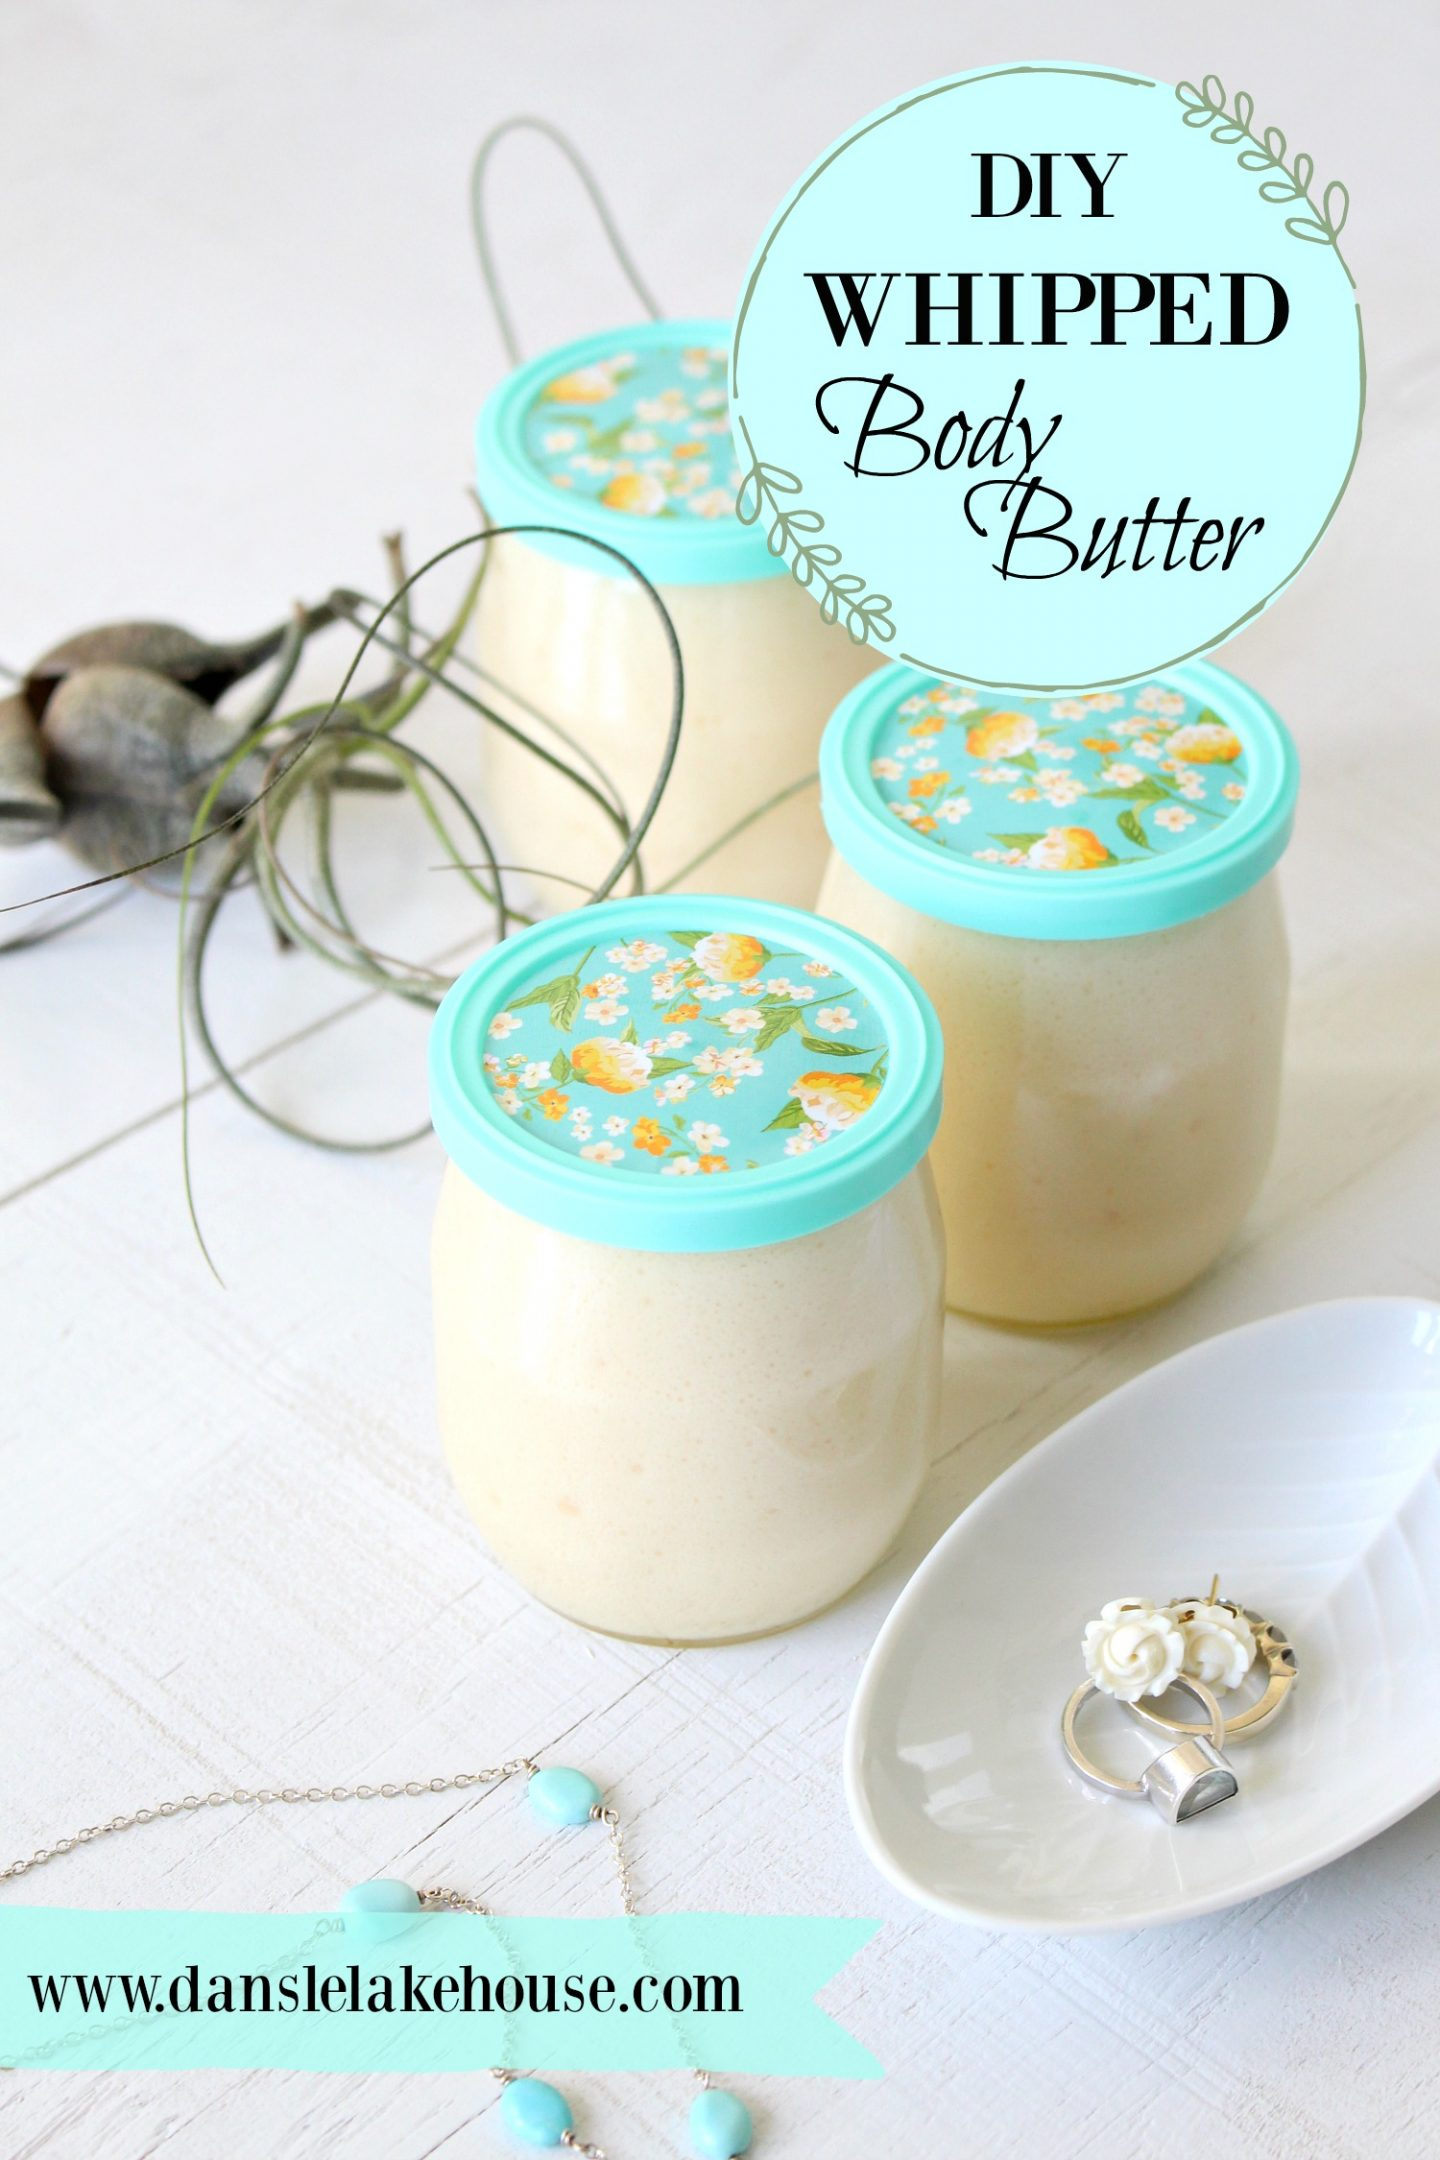 DIY Whipped Body Butter: how to fix DIY whipped body butter that won't whip